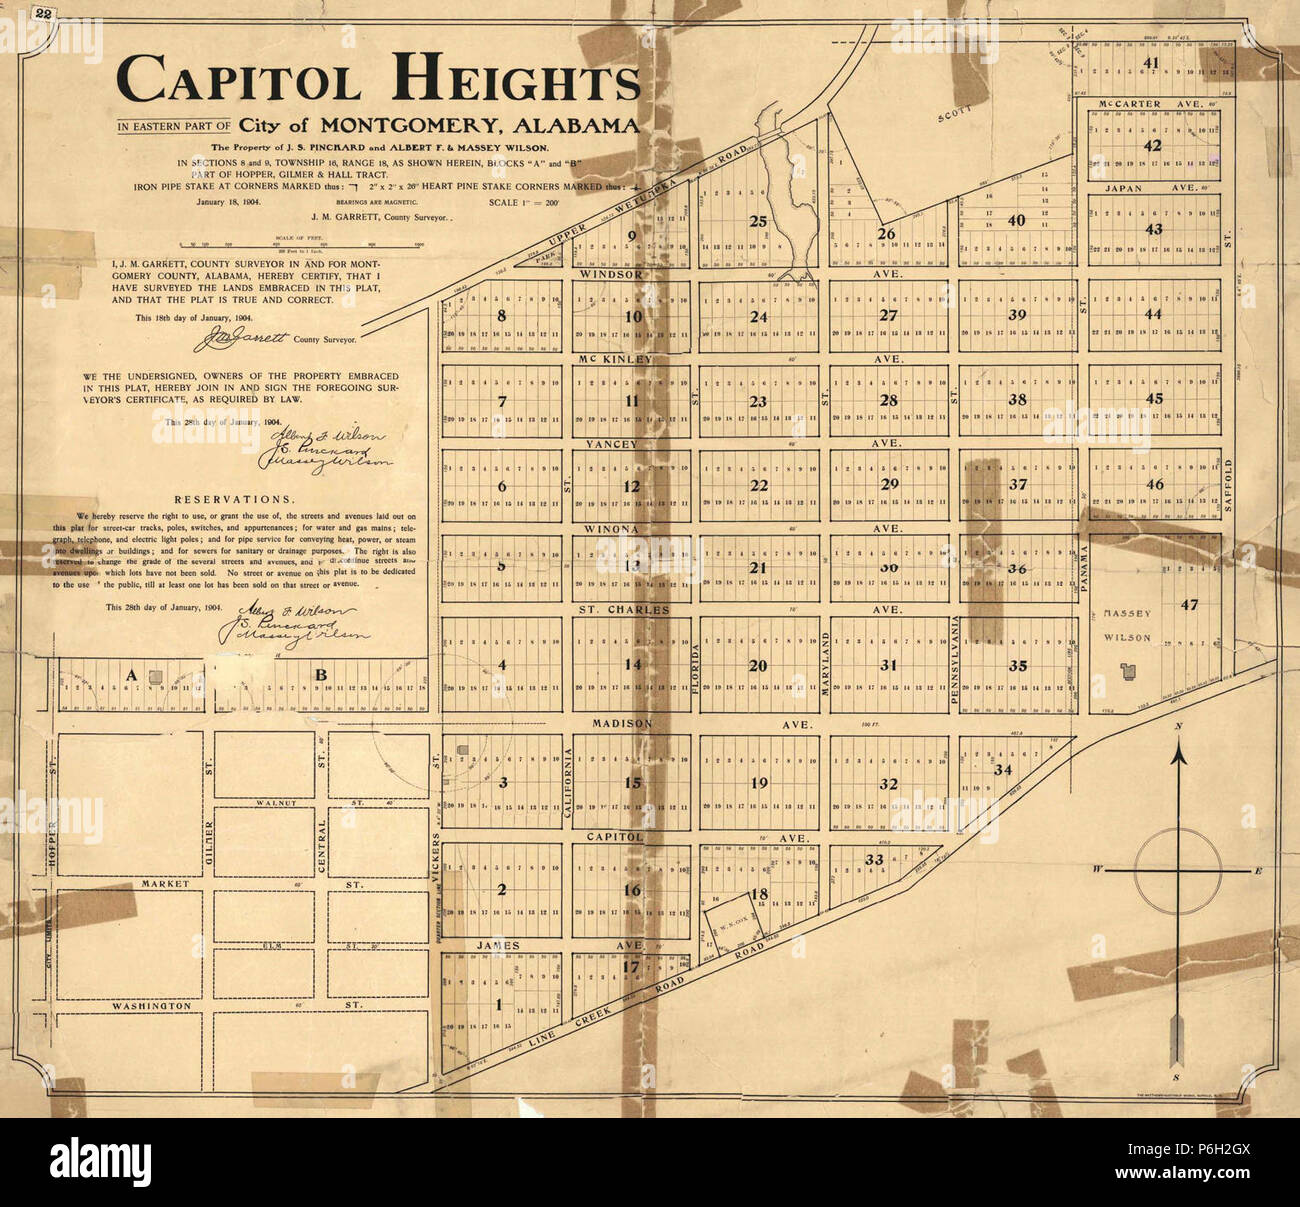 1904 map of Capitol Heights, Montgomery, Alabama Stock Photo ...